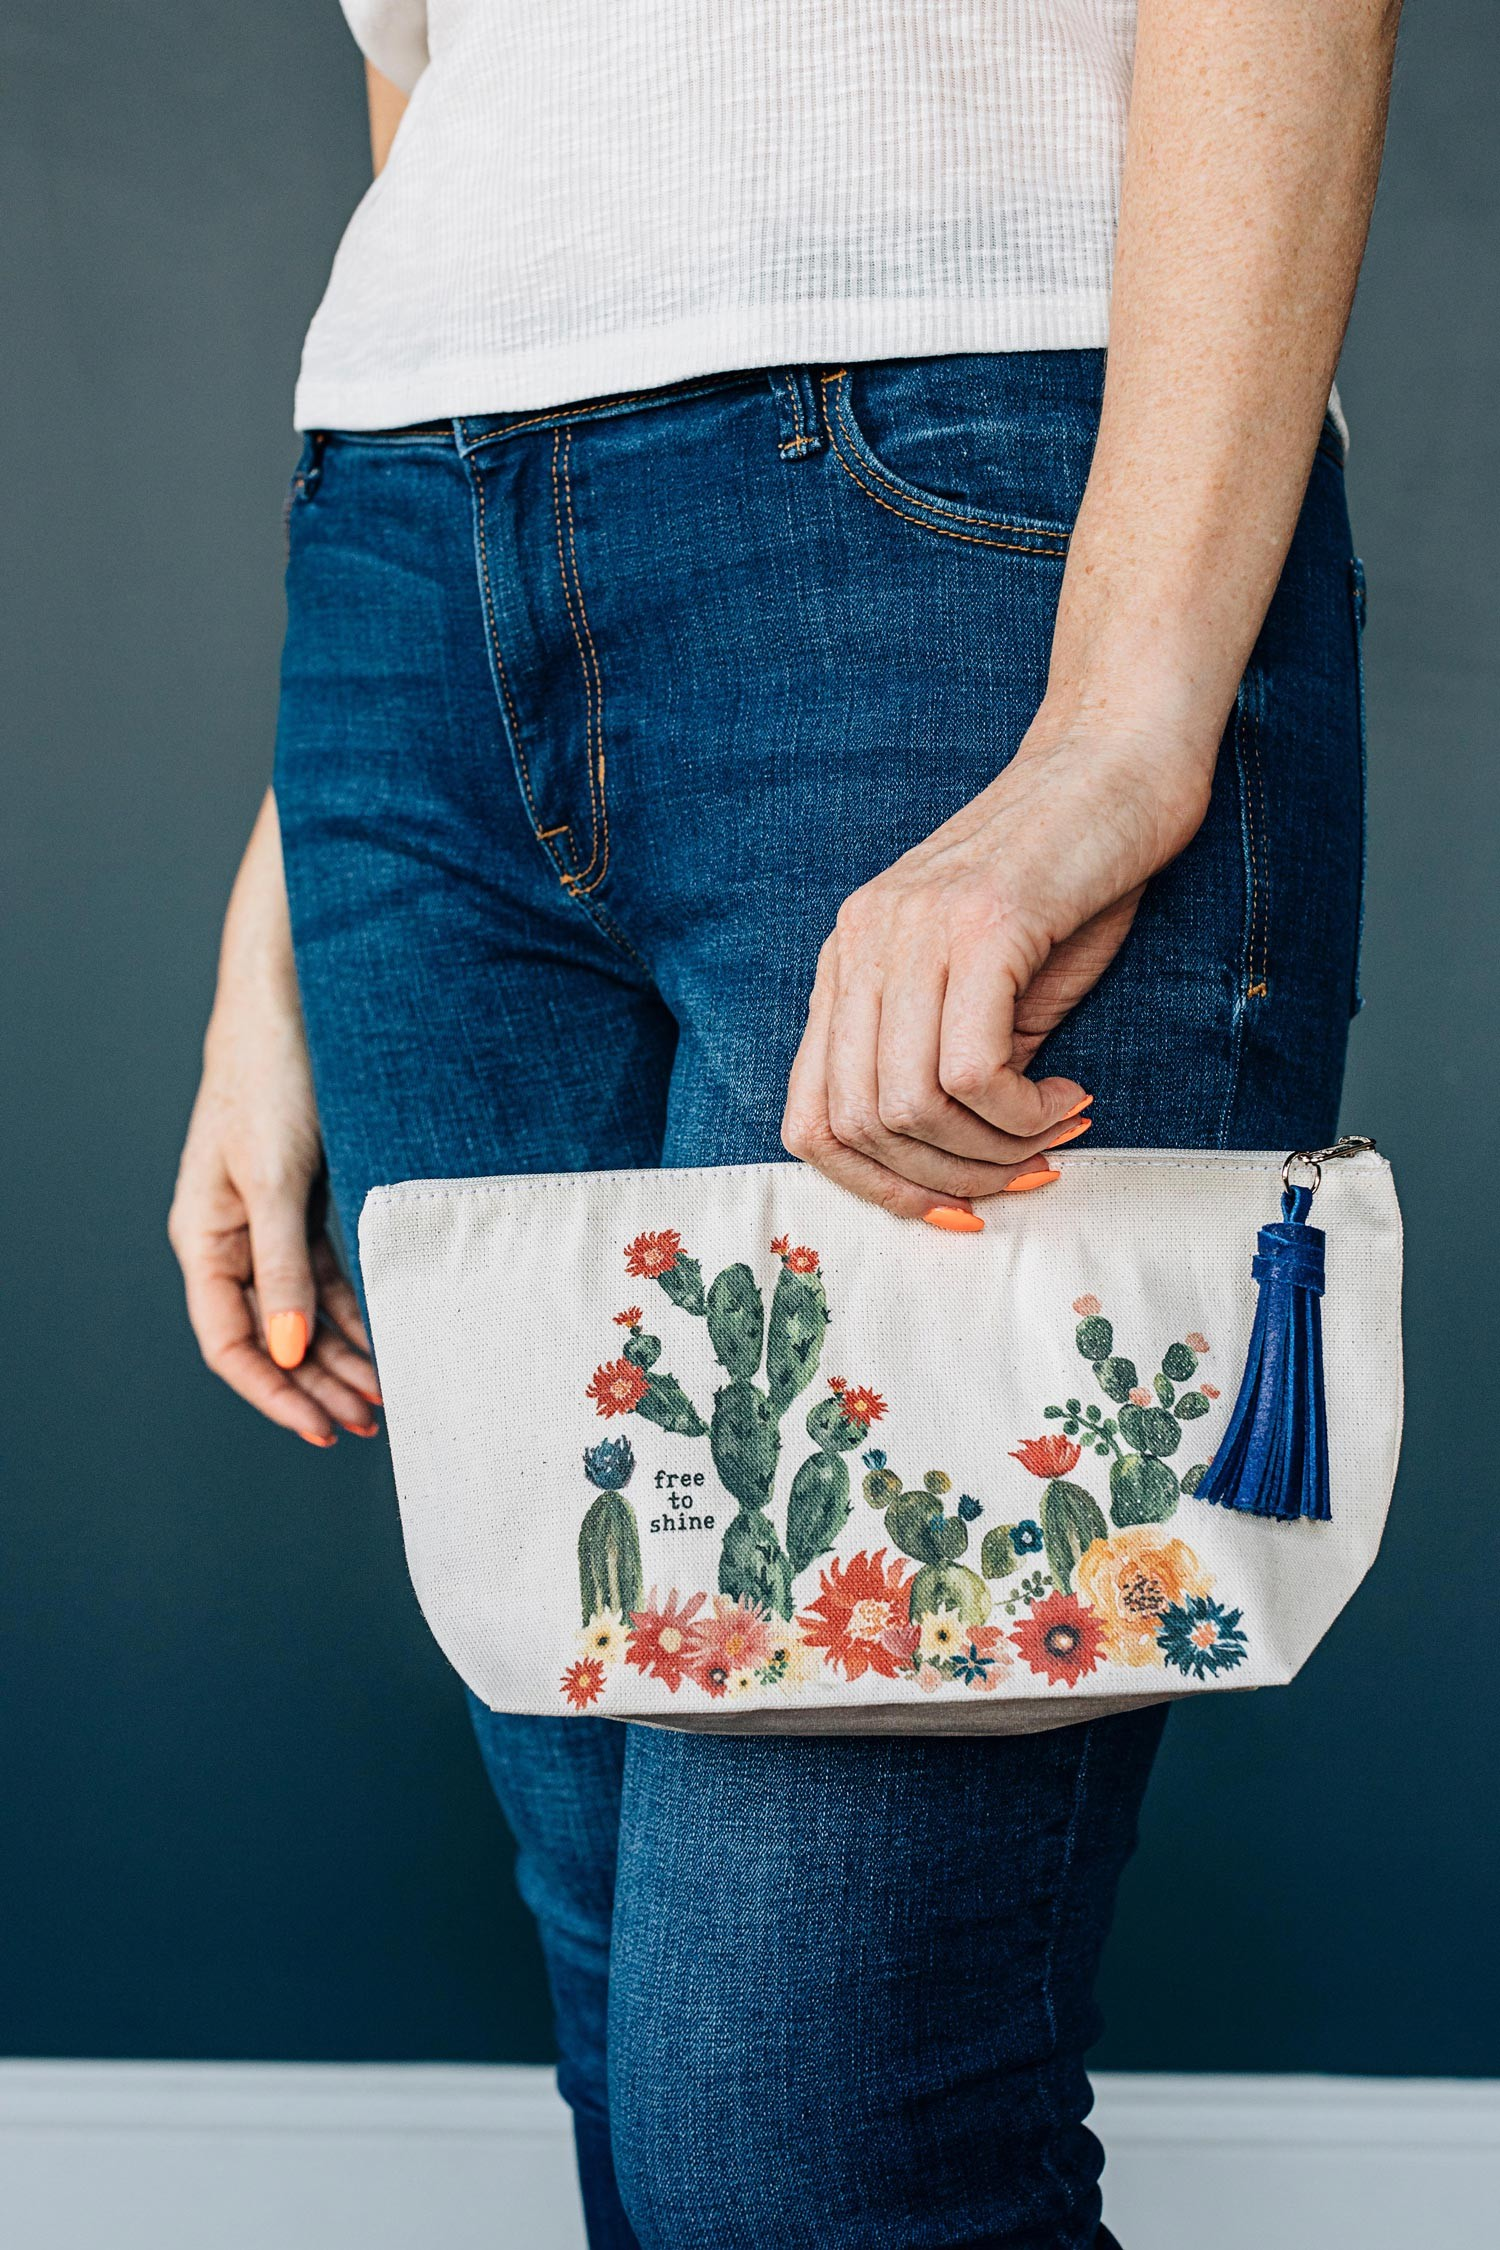 ethical brands empowering women